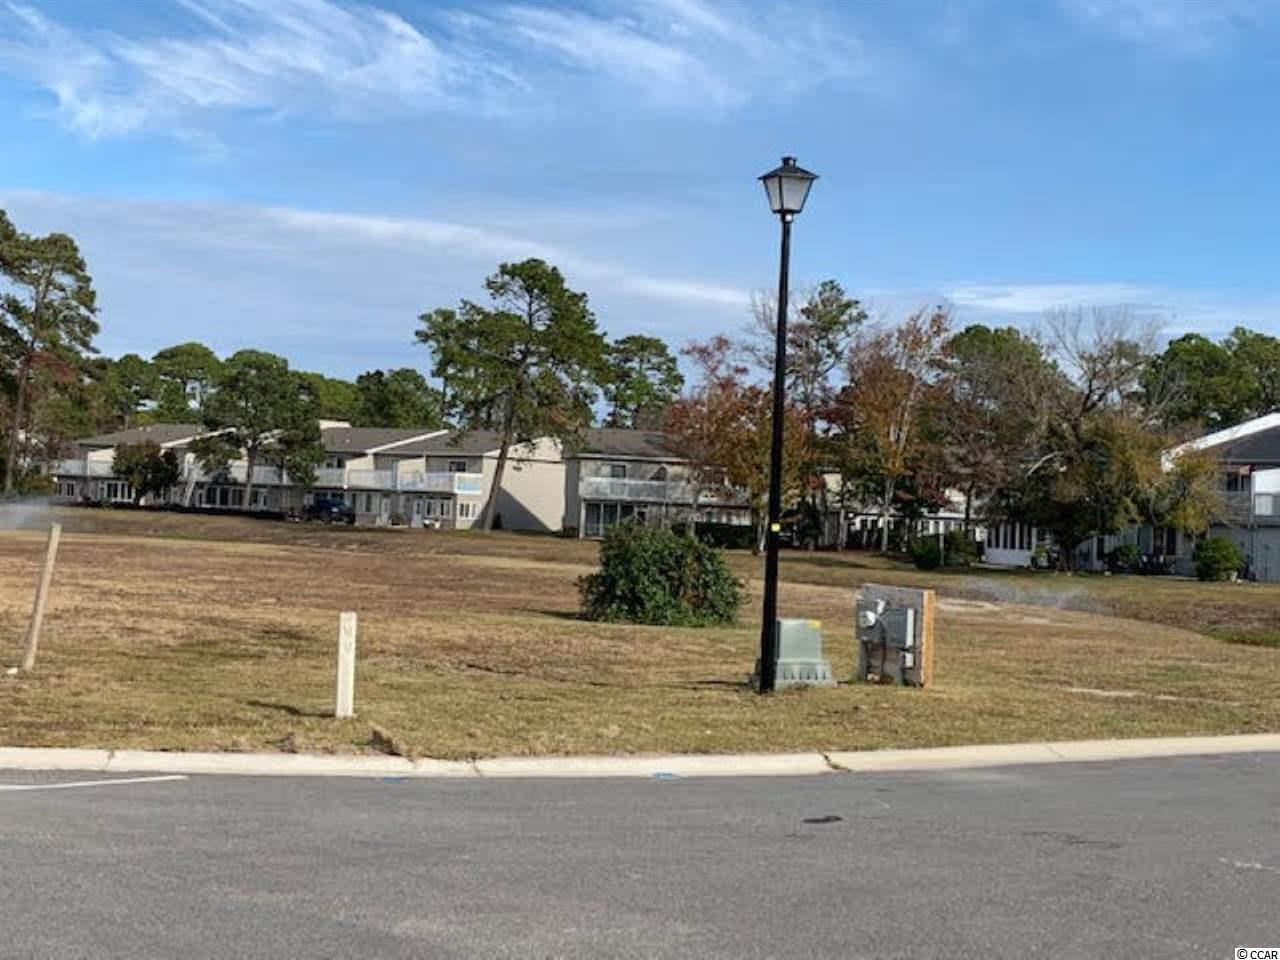 Don't Miss this great Corner, Lake lot in Robber's Roost!  Choose from one of our many floorplans and build your dream home!  Robber's Roost at North Myrtle Beach is a natural gas community east of Hwy 17 with a community pool coming for the 2020 swimming season & is located within walking, bicycle or golf cart distance to Tilghman Beach, the beautiful Atlantic Ocean w/ 60 miles of white sandy beaches and is close to Coastal North Town Center (shopping, dining, beauty, pets), Shag dance capital Main St., golf, boating/fishing in the ICW, entertainment and all the amenities of living in Coastal South Carolina. Whether a primary residence or your vacation get-a-way, Don't Miss ~ come live the dream!